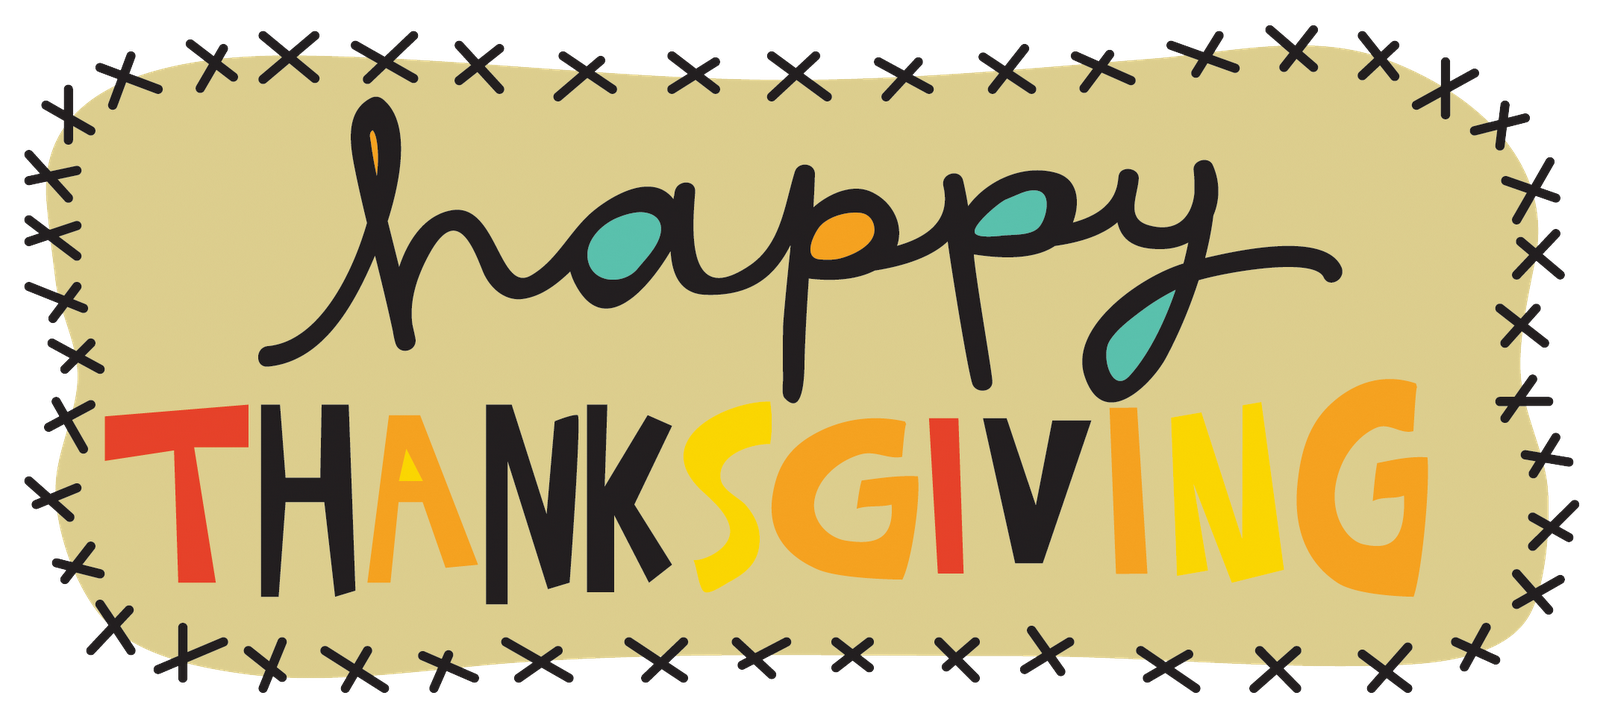 Happy thanksgiving words clipart picture transparent Thanksgiving 2016 Clip Art - Clipart &vector Labs :) • picture transparent